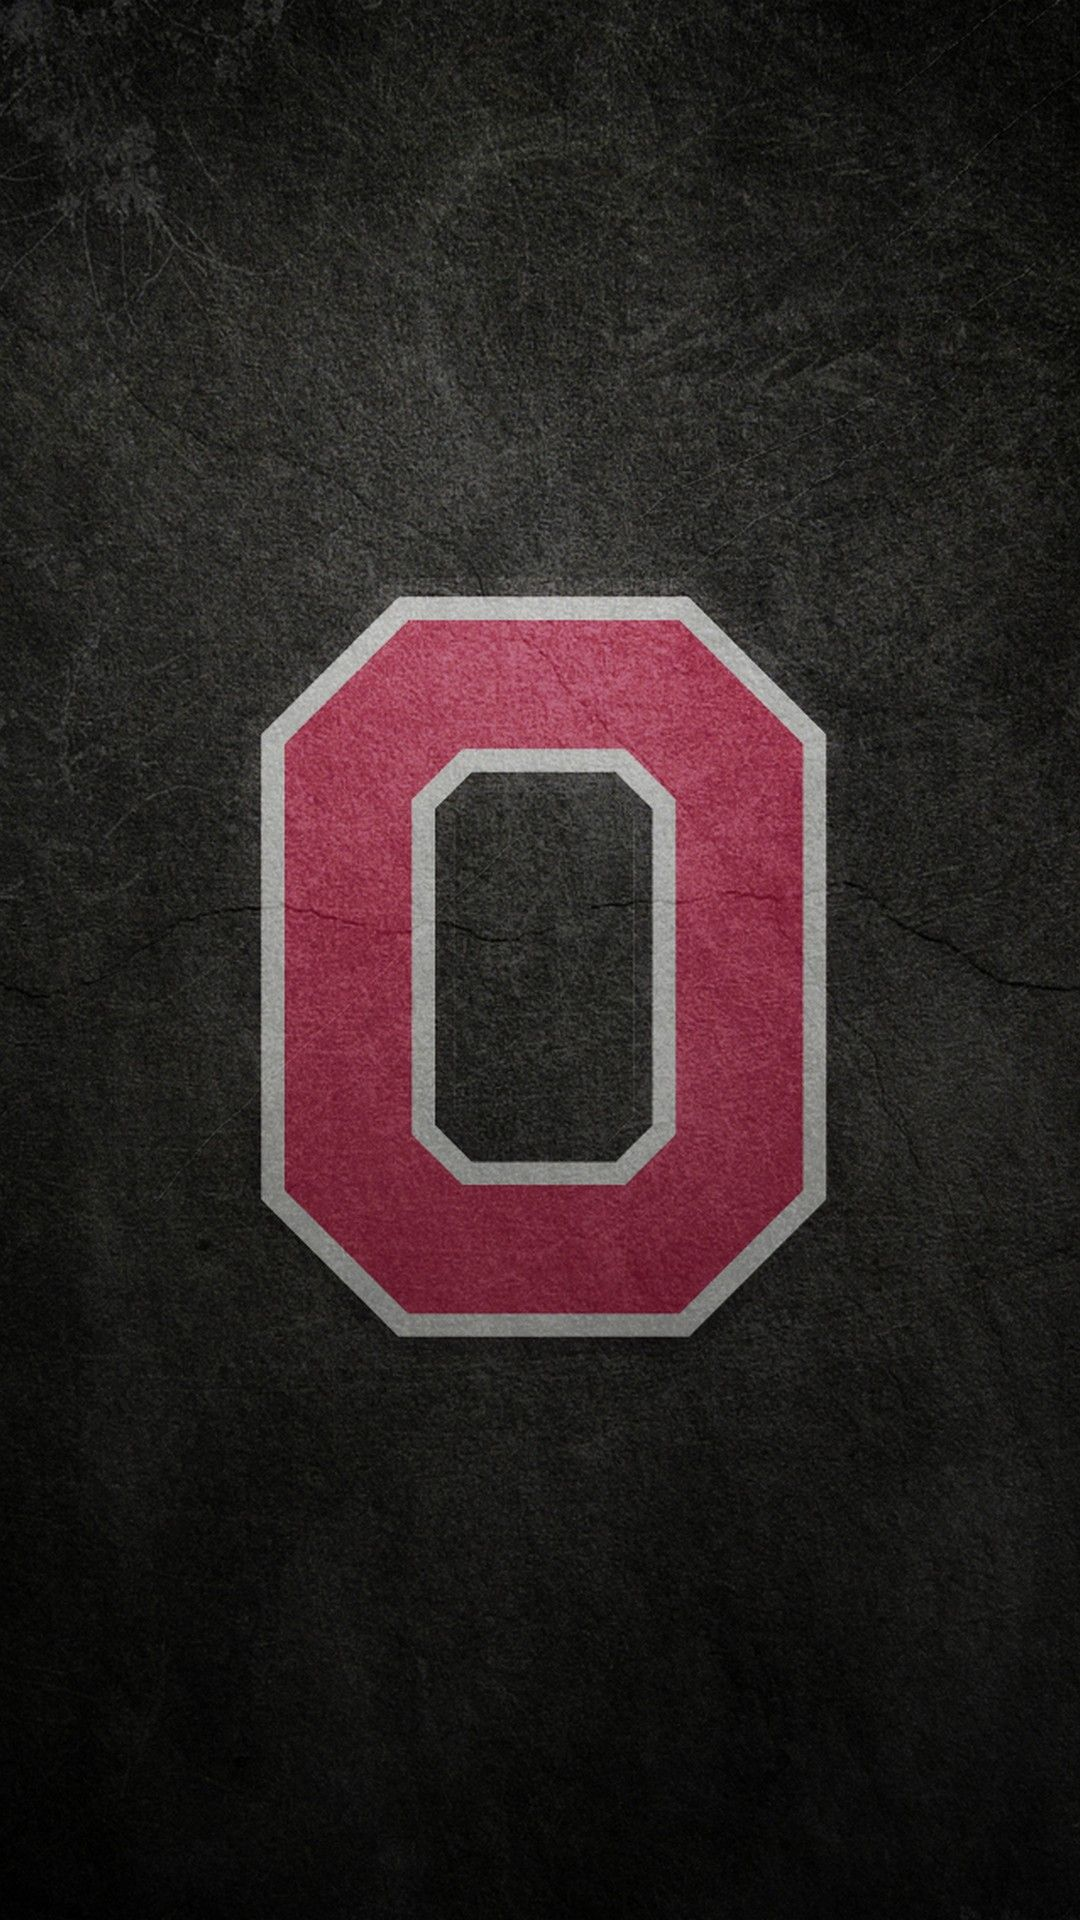 Ohio State Wallpaper Android Download In 2020 Ohio State Wallpaper Football Wallpaper Ohio State Buckeyes Football